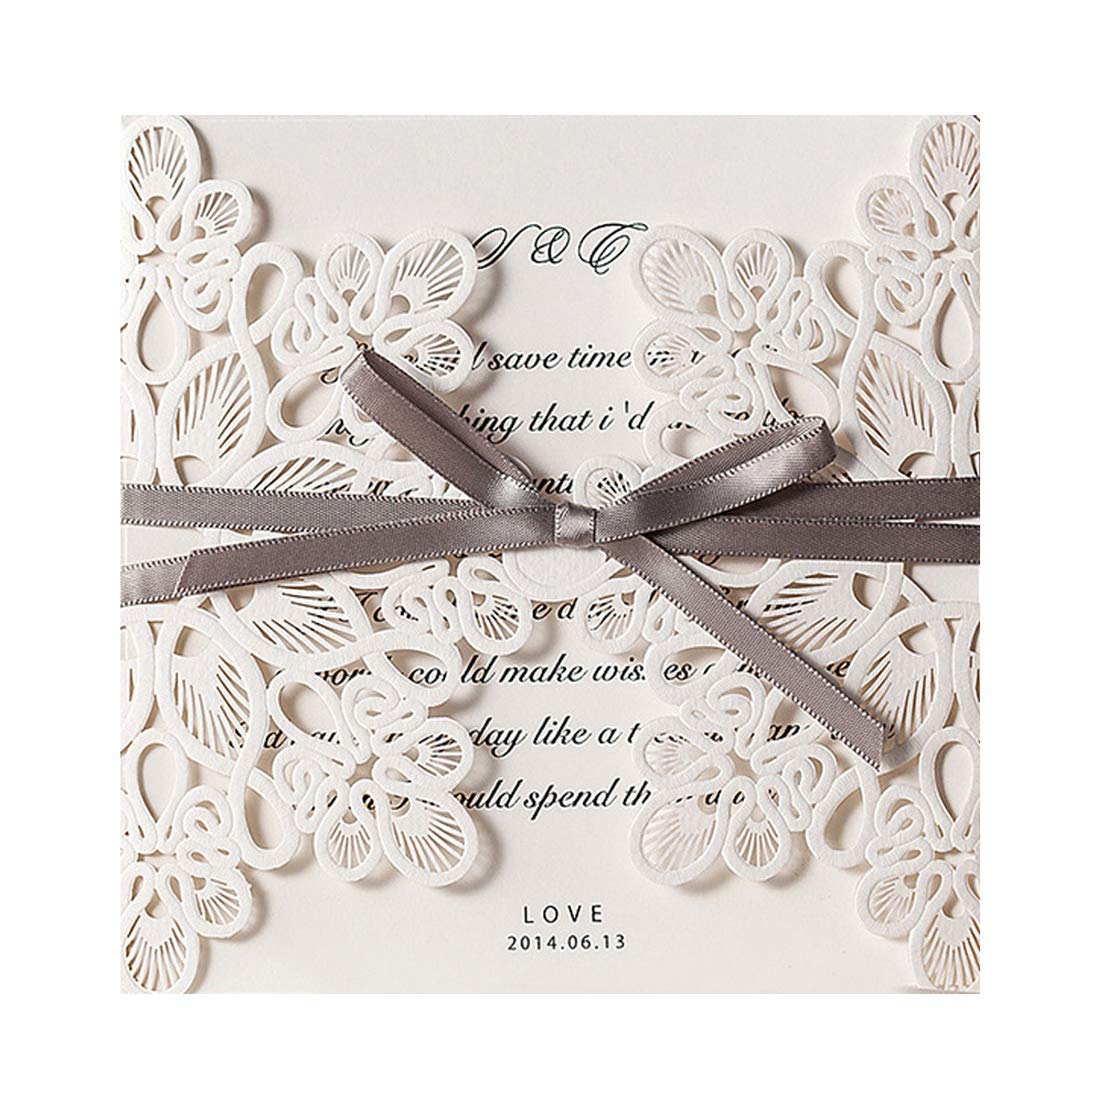 WISHMADE 50x Elegant Wedding Invitation Cards Kit with White Laser Cut Flower Lace Invitations Marriage Engagement Bridal Baby Shower Wedding Invites with Brown Ribbon, 50pcs